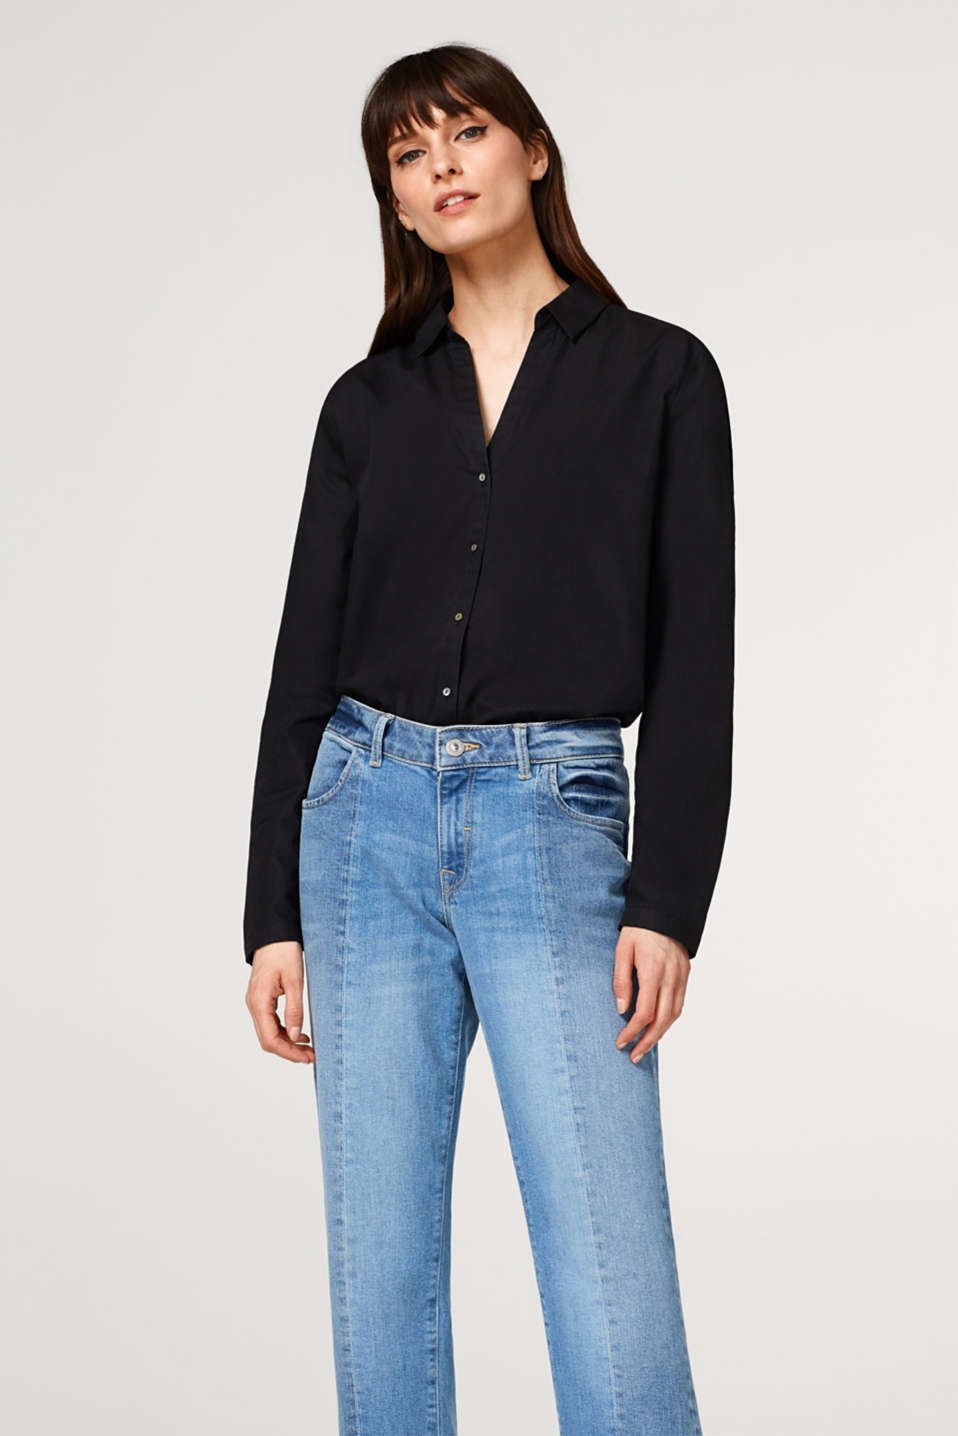 Esprit - Airy cotton blouse with shirt collar